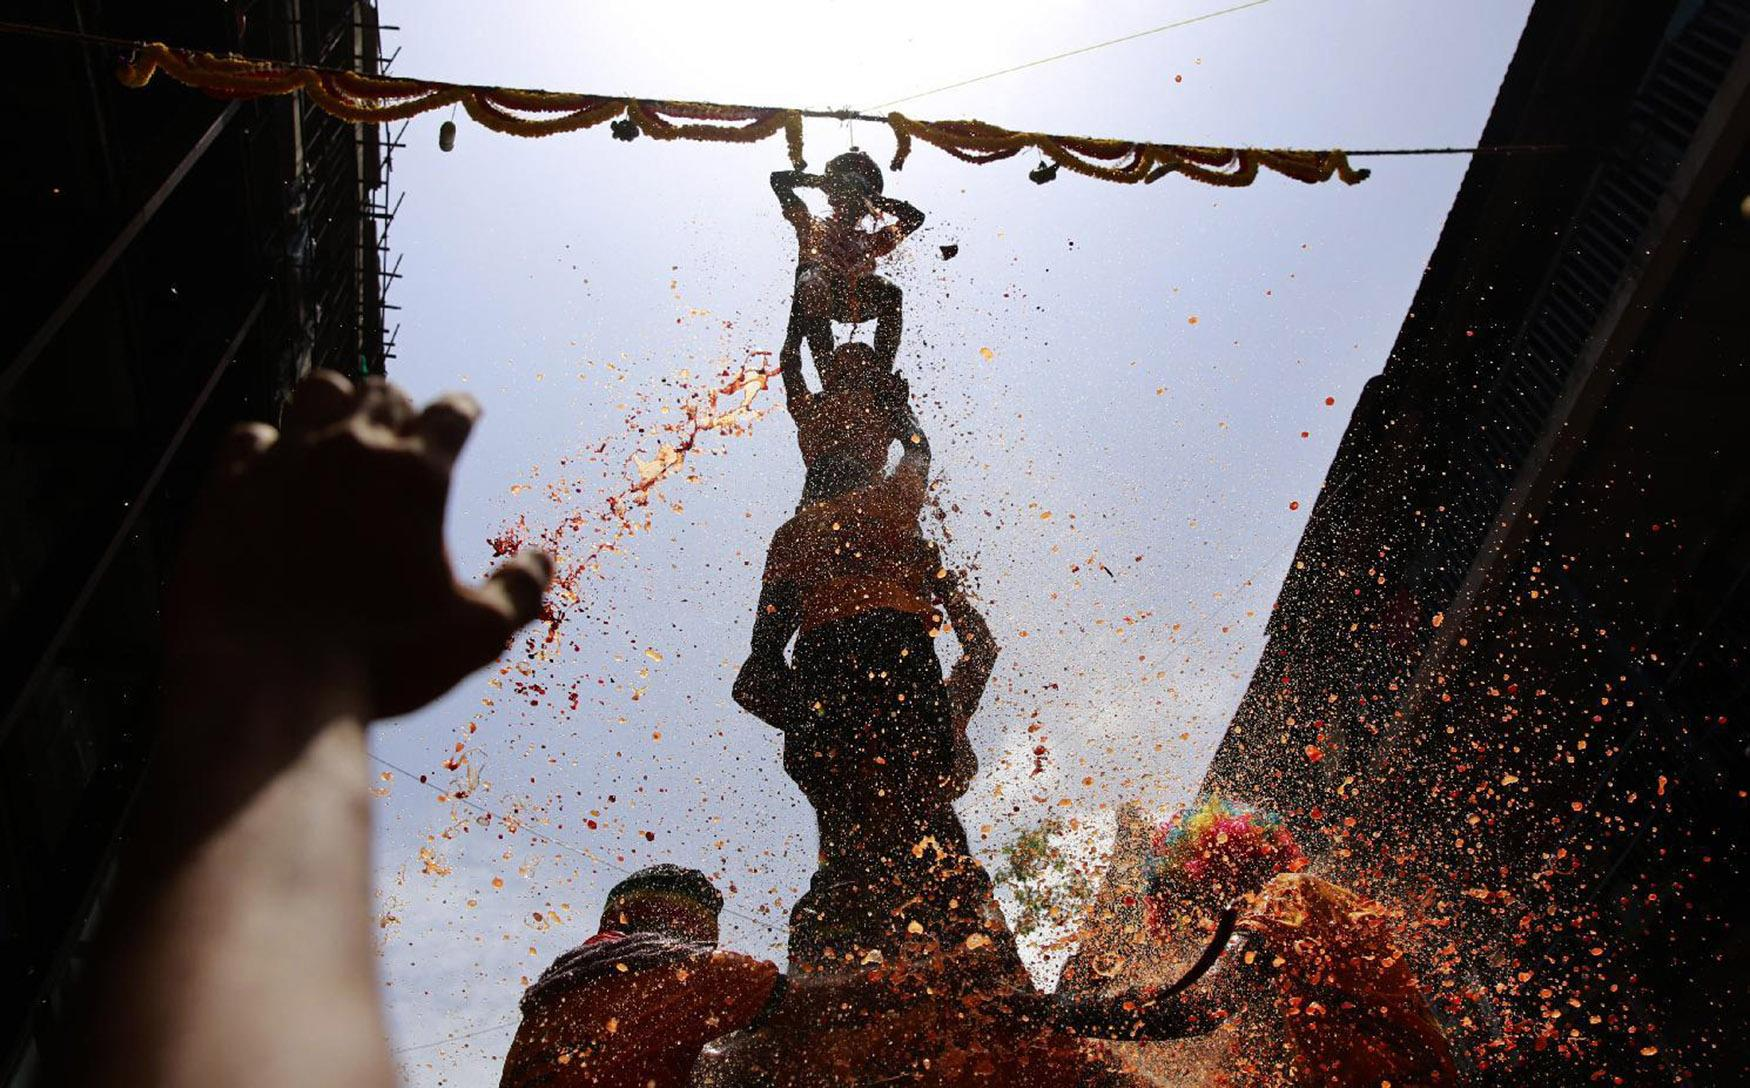 """<p>Curd spills as Indian devotees form a human pyramid and break the """"Dahi handi"""", an earthen pot filled with curd, as part of celebrations to mark Janmashtami in Mumbai, India, Aug. 25, 2016. The holiday marks the birth of Hindu god Krishna. (Photo: Rafiq Maqbool/AP) </p>"""